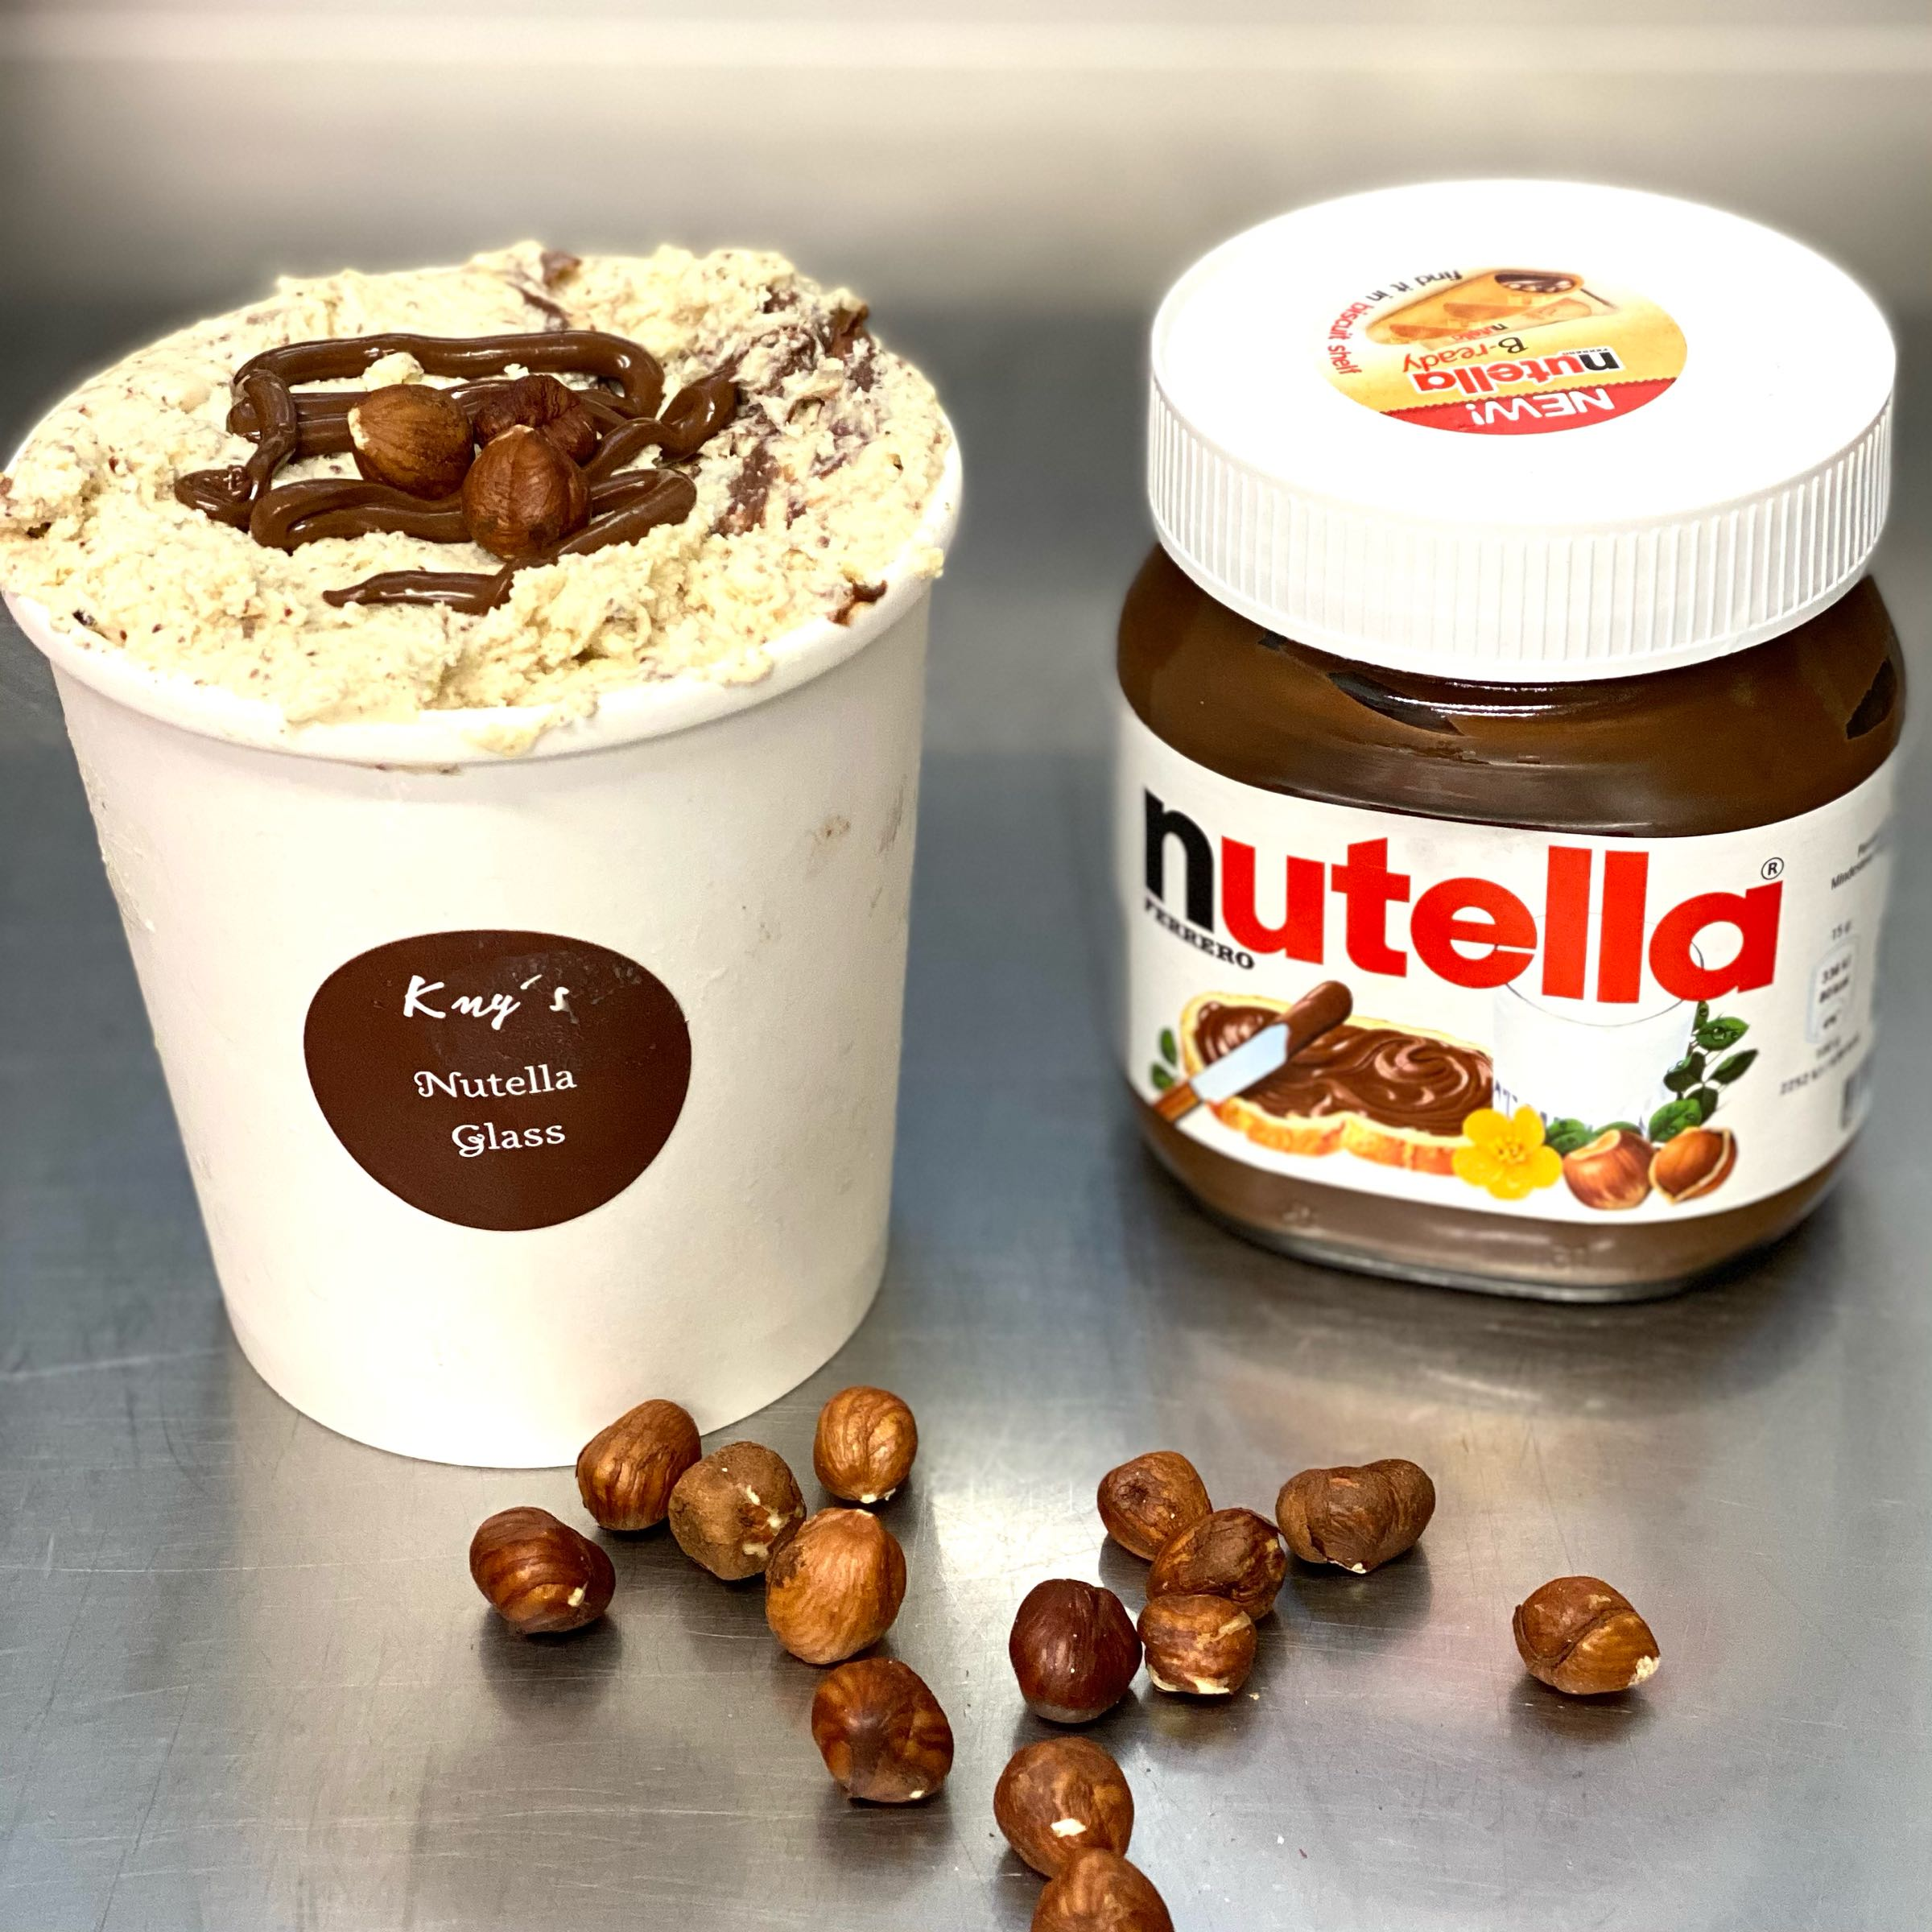 Nutella Glass